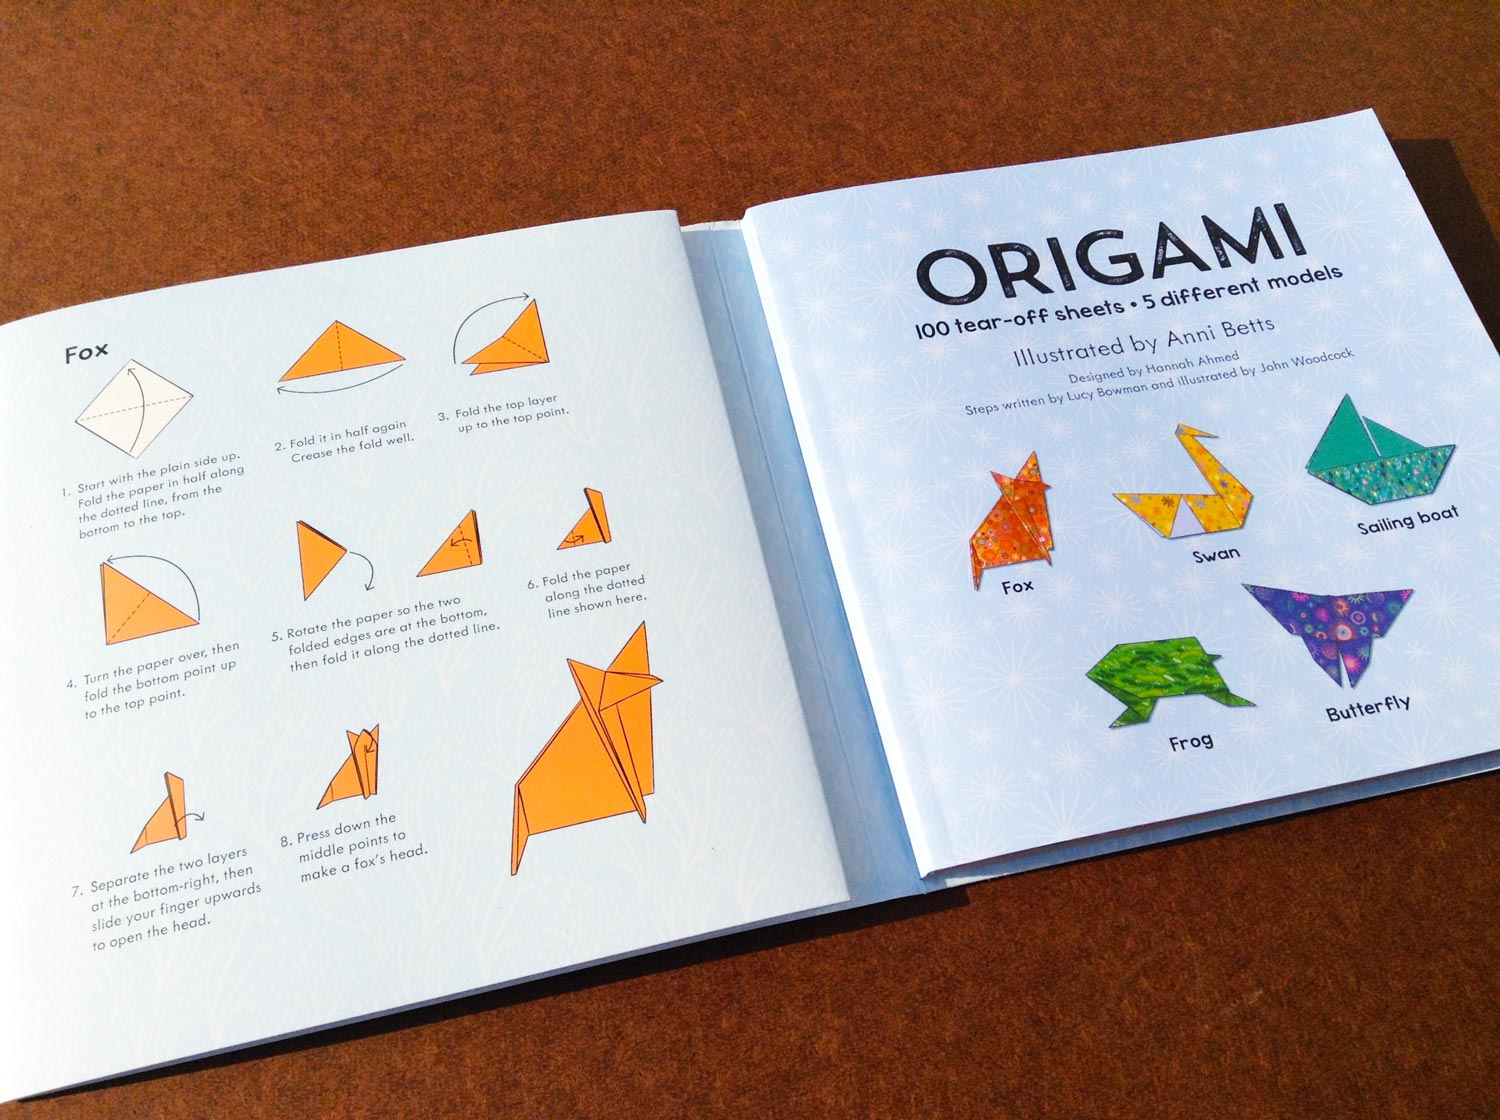 Origami Book inside spread